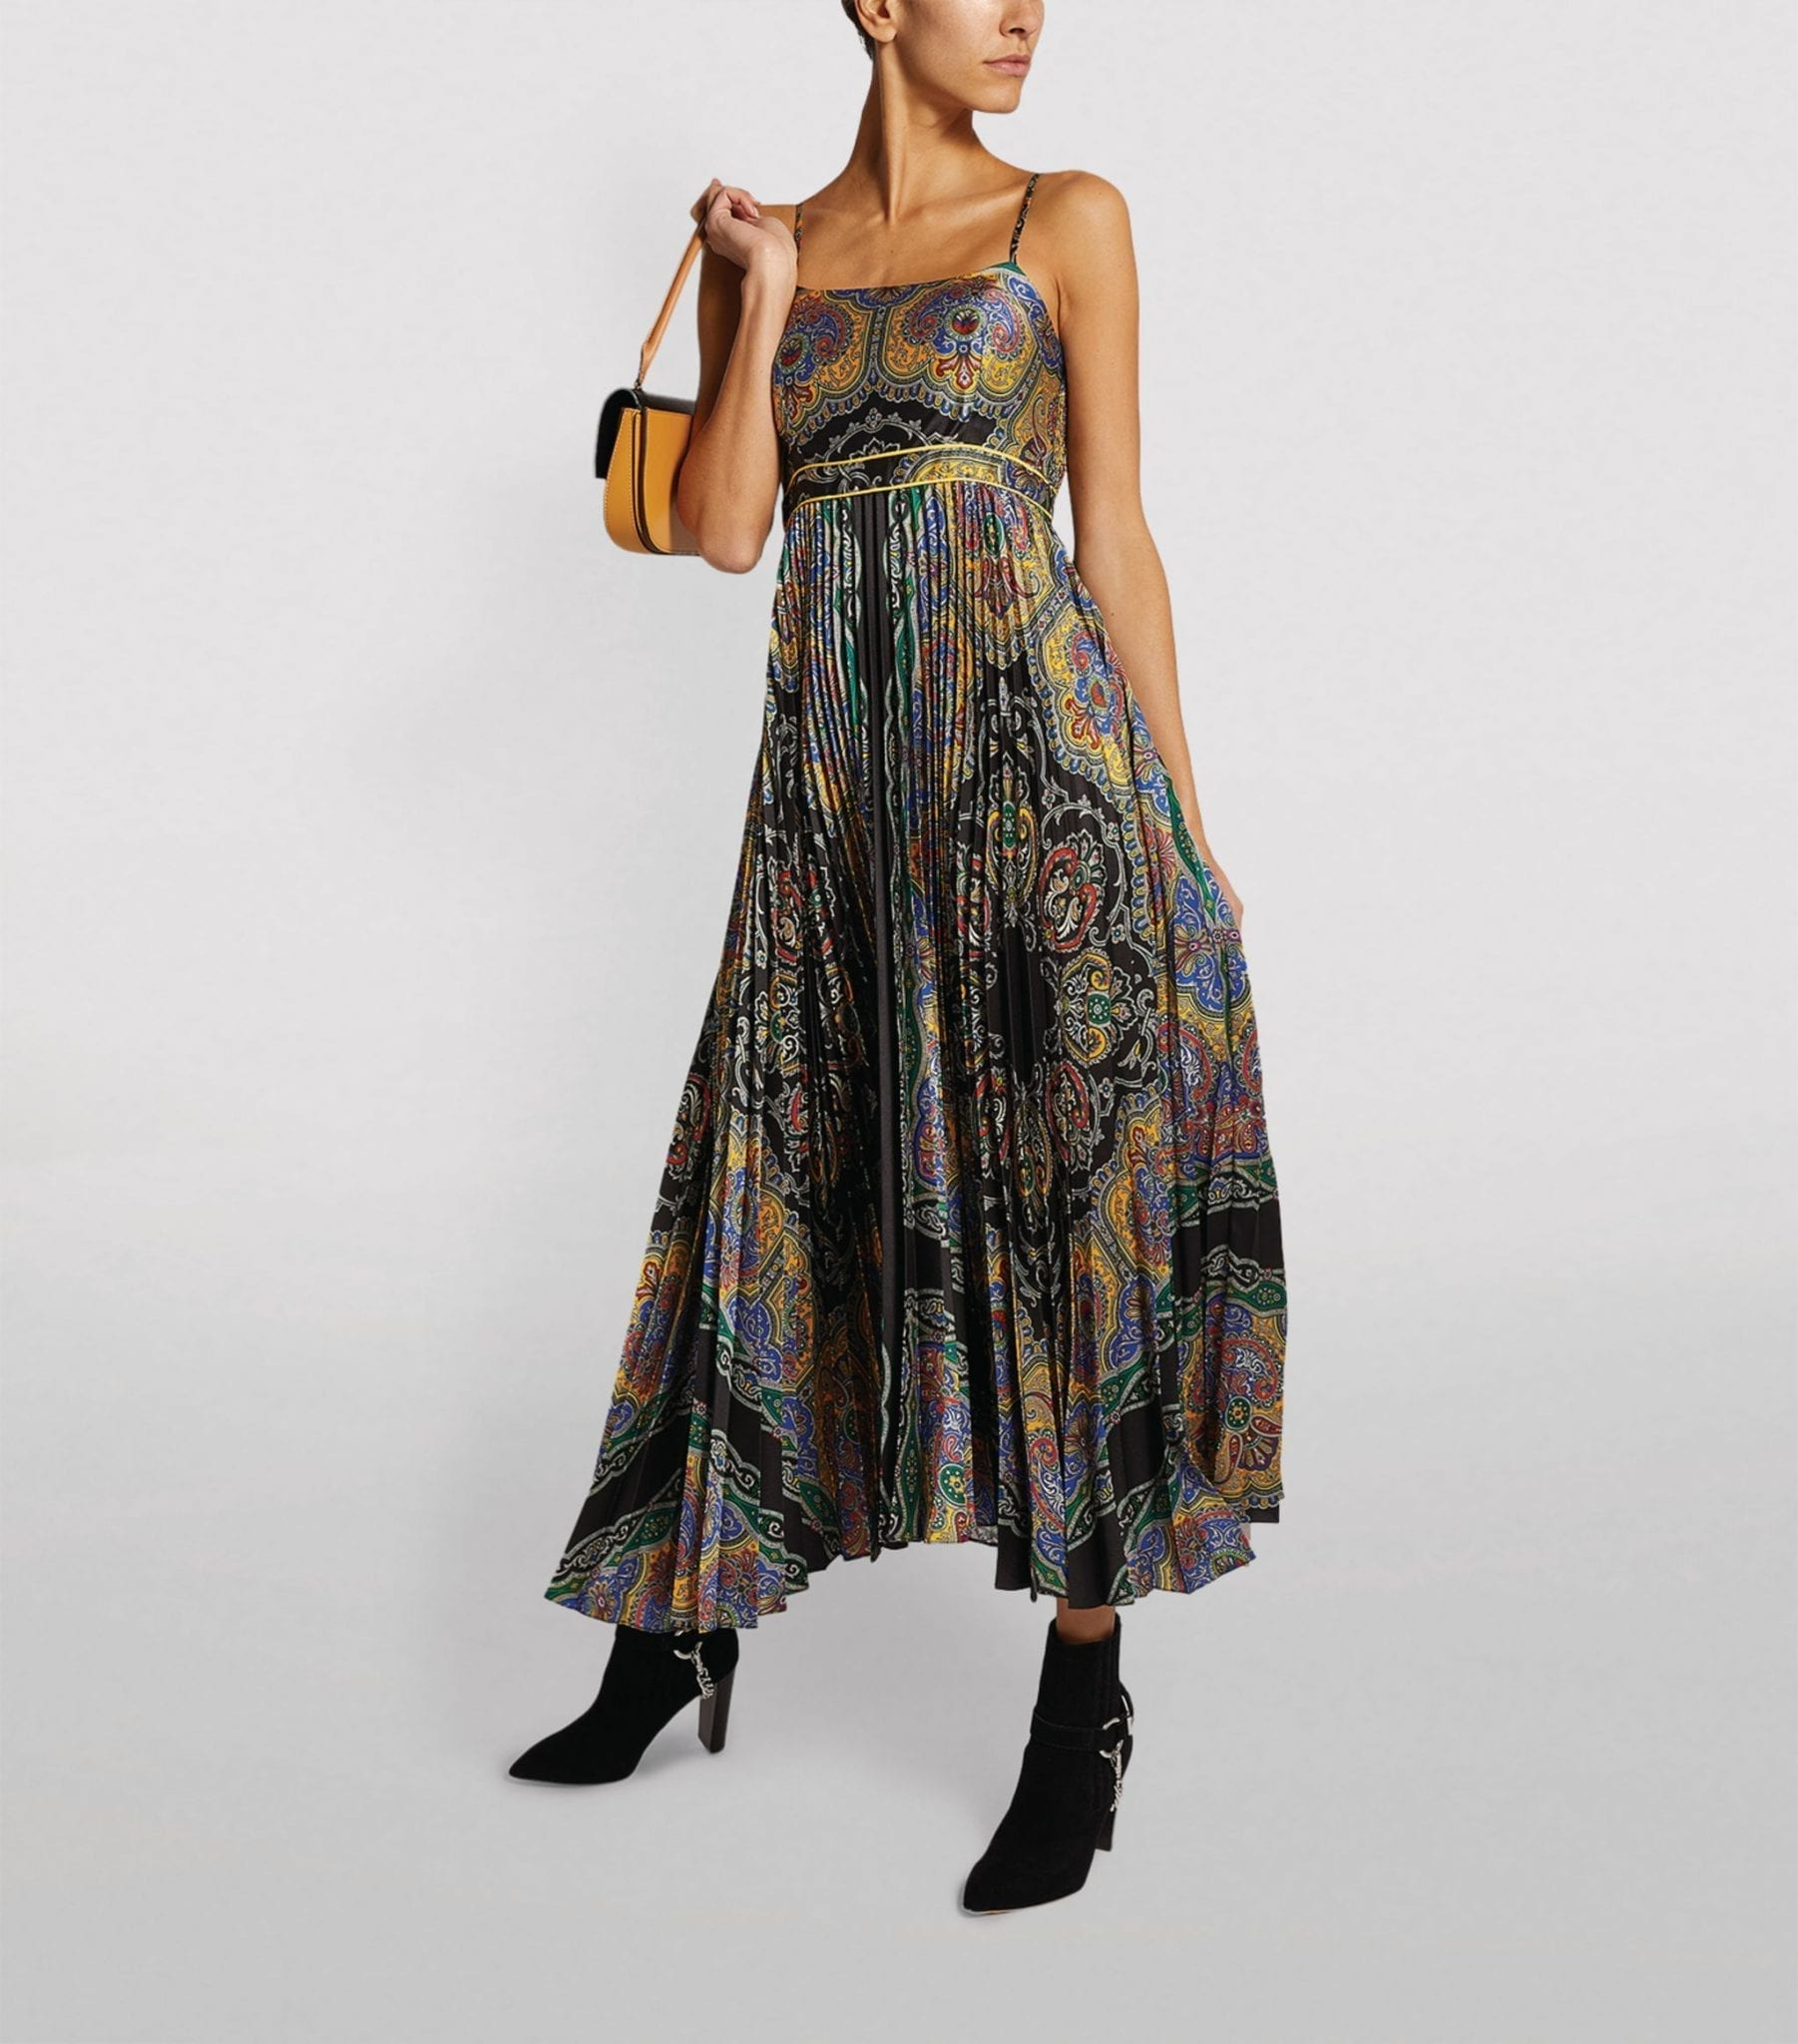 SANDRO PARIS Patterned Dress